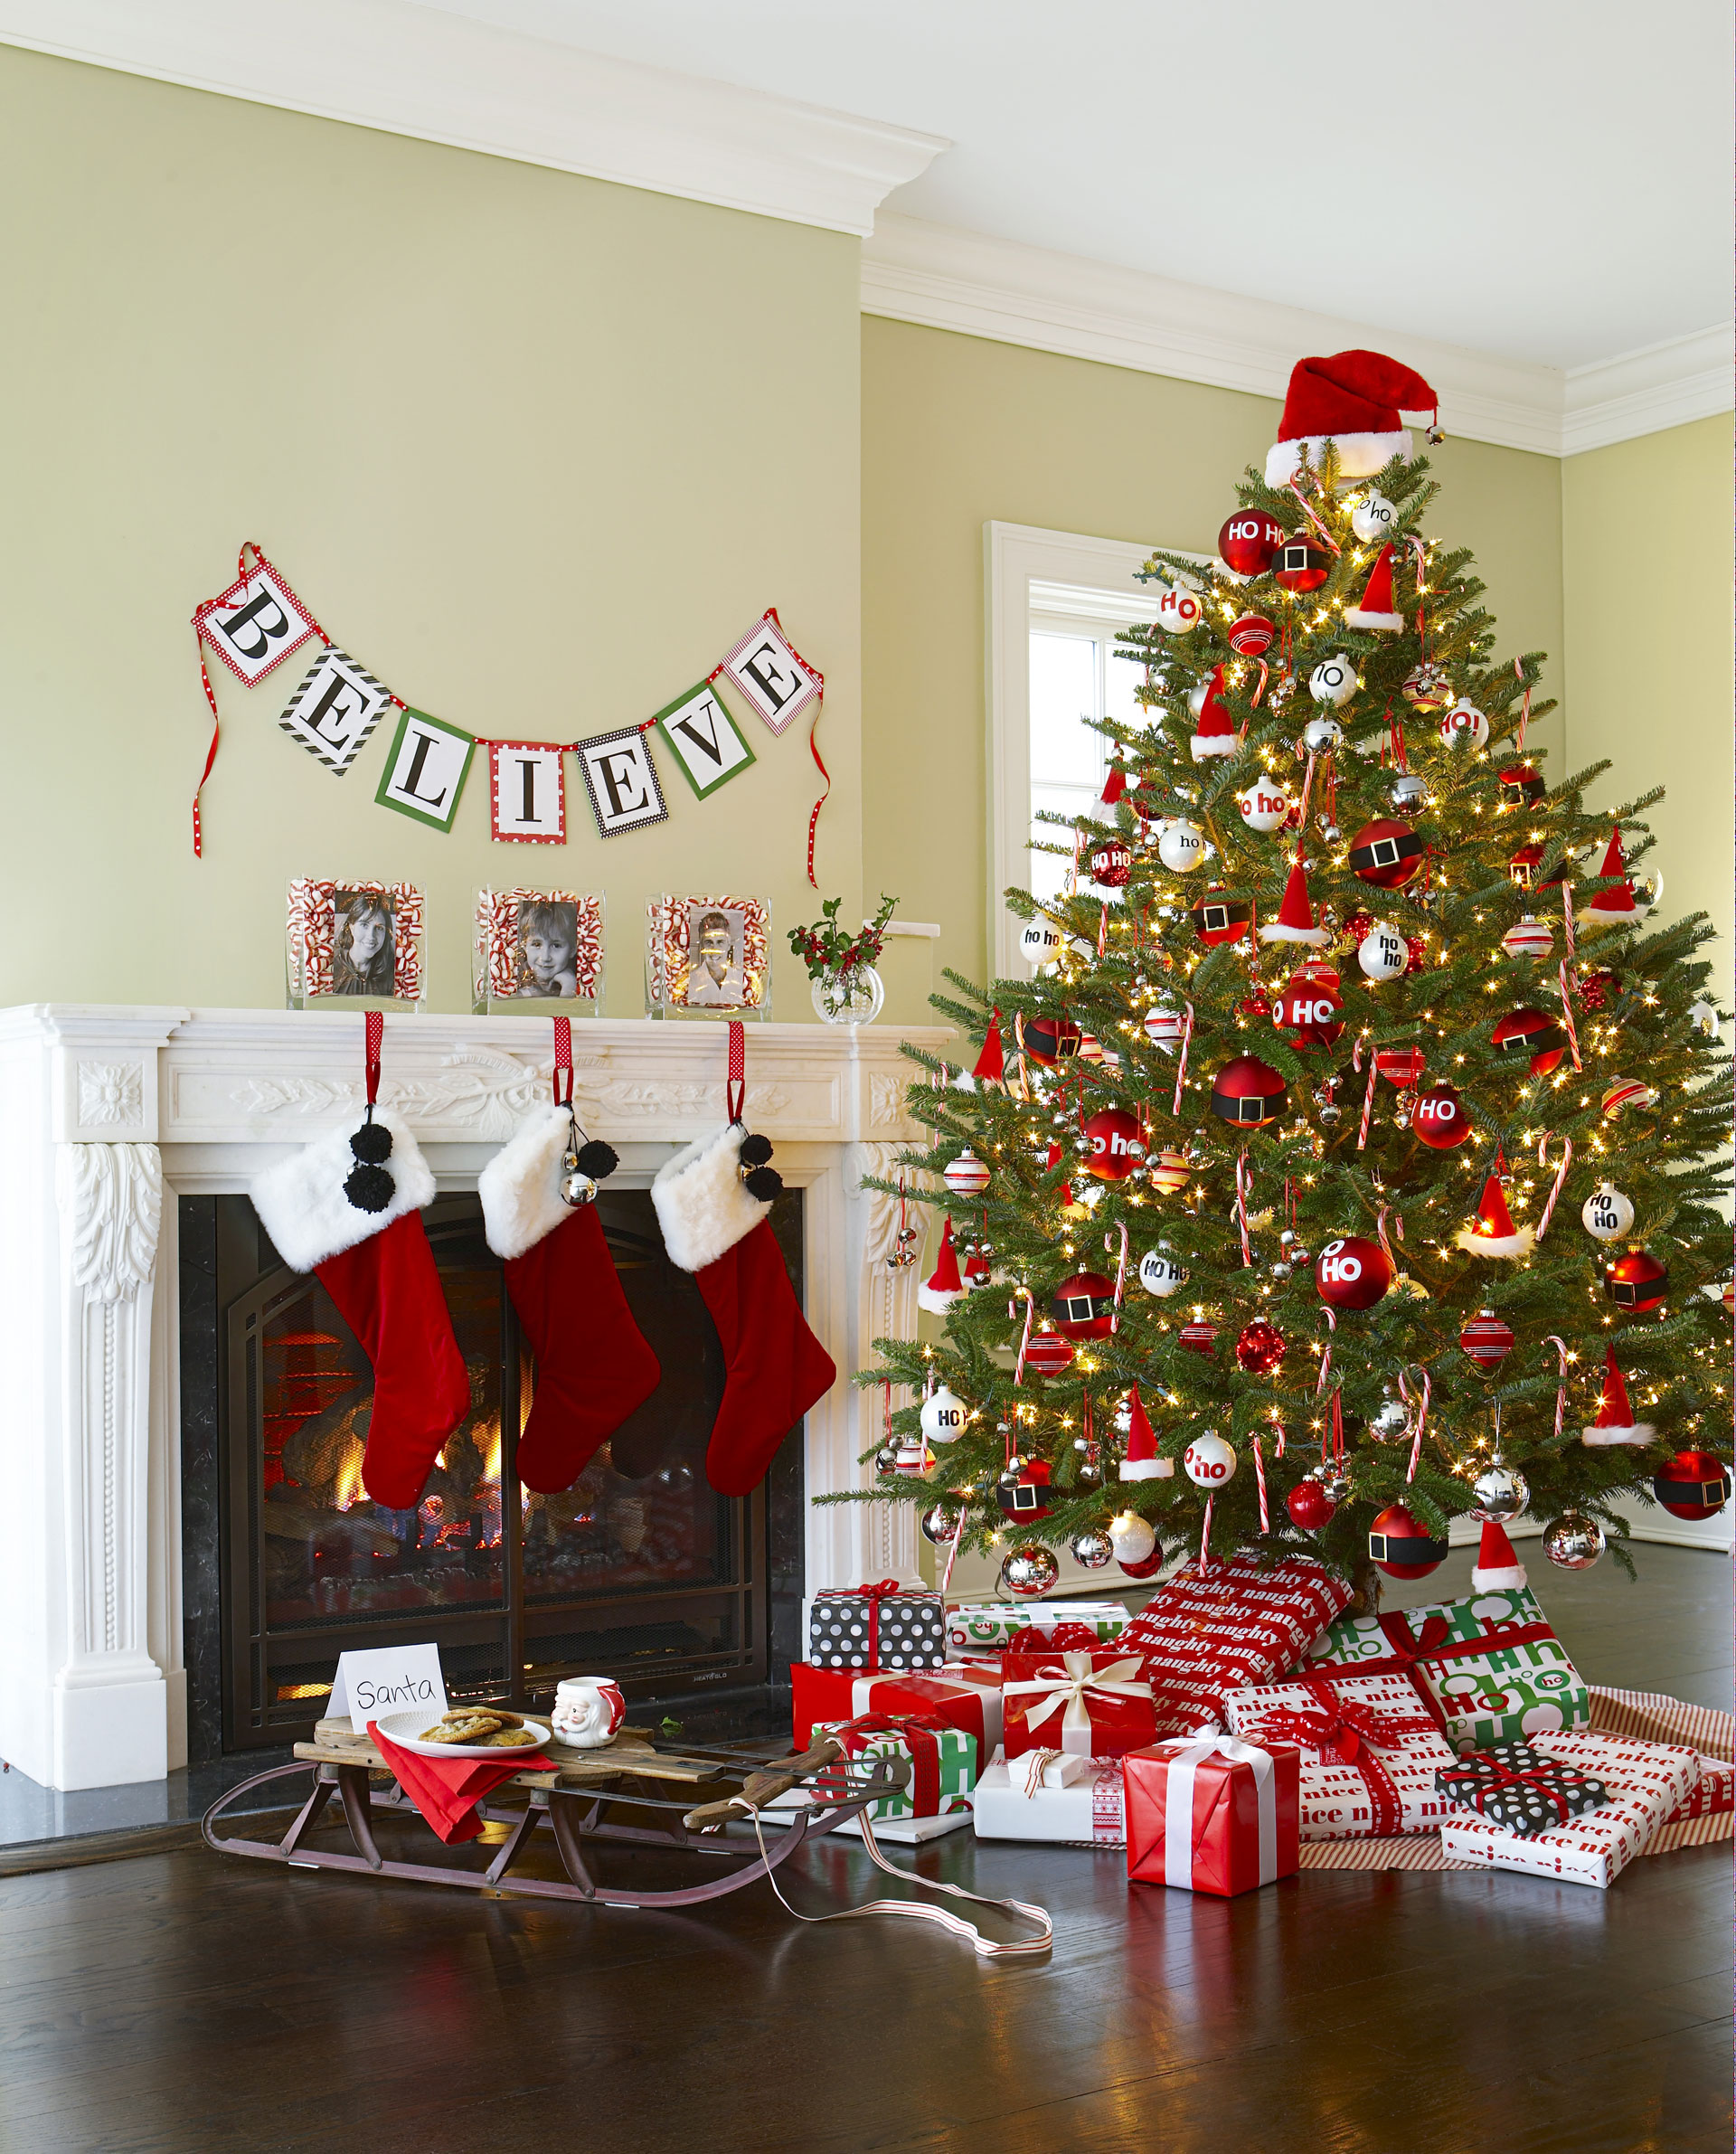 Decorated Christmas Tree Ideas Pictures Of Christmas Tree - Best red christmas decor ideas